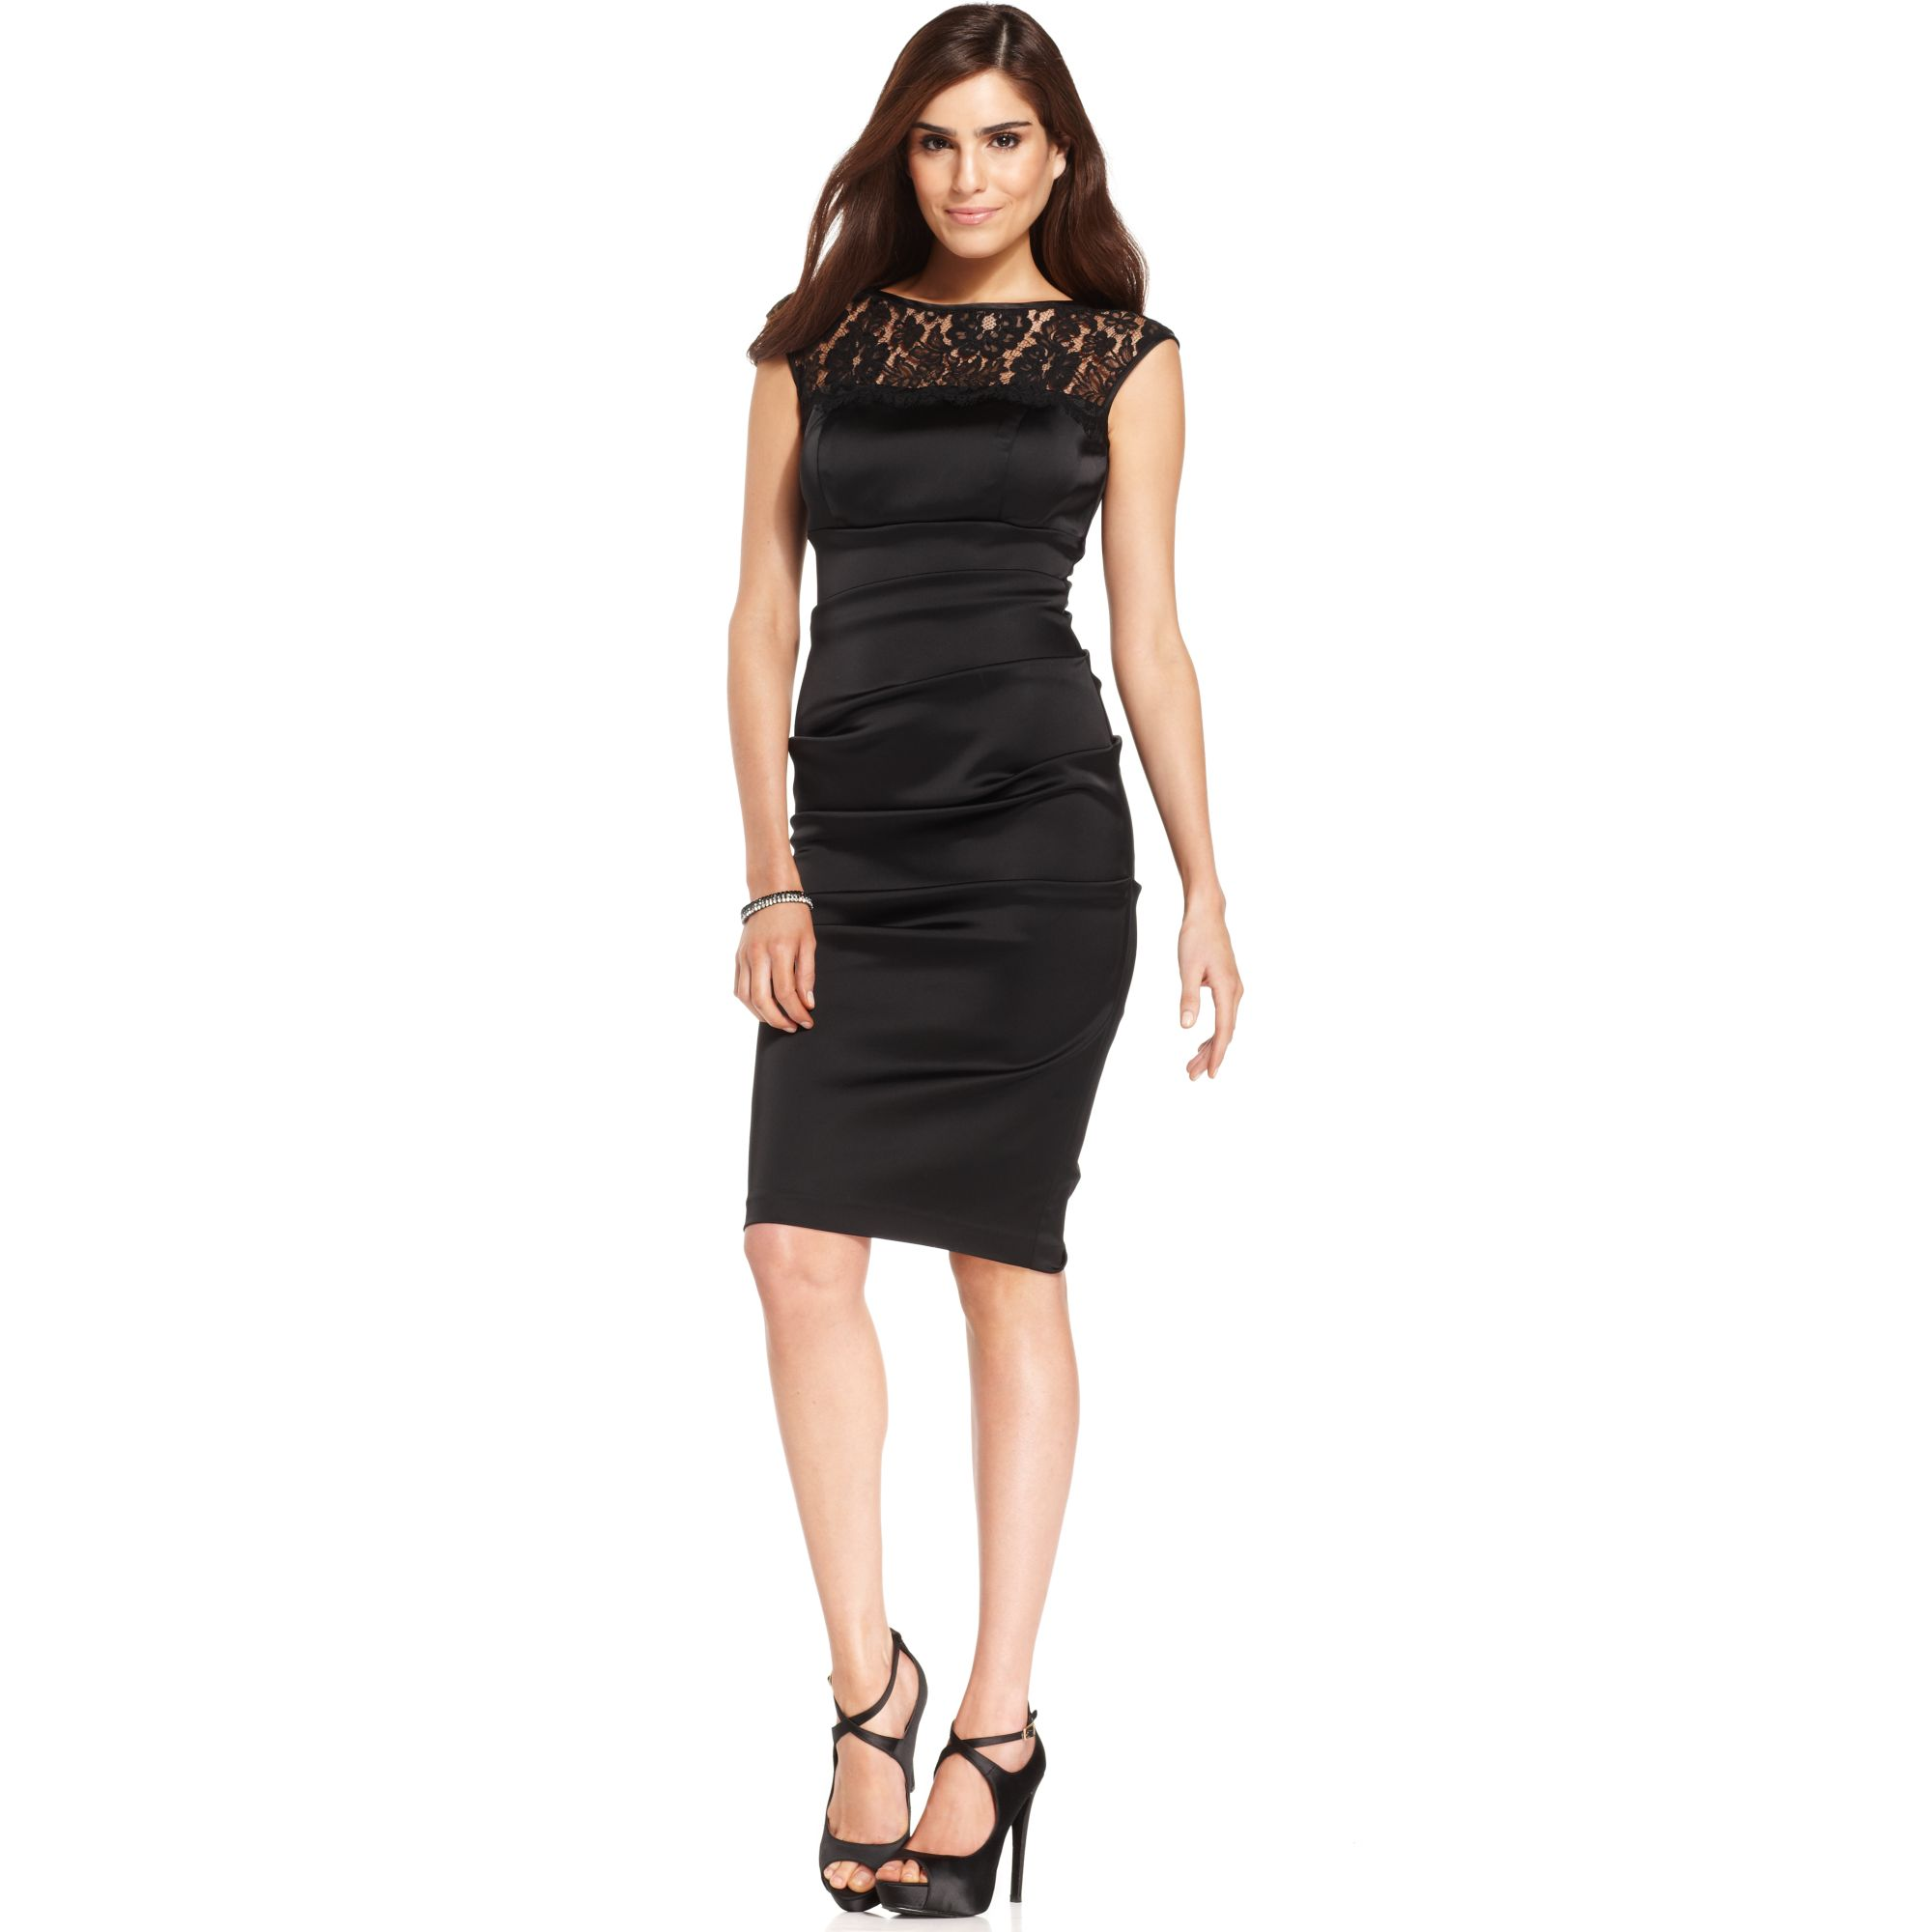 Womens Formal Dresses At Macys Cheap Nike Shoes Online